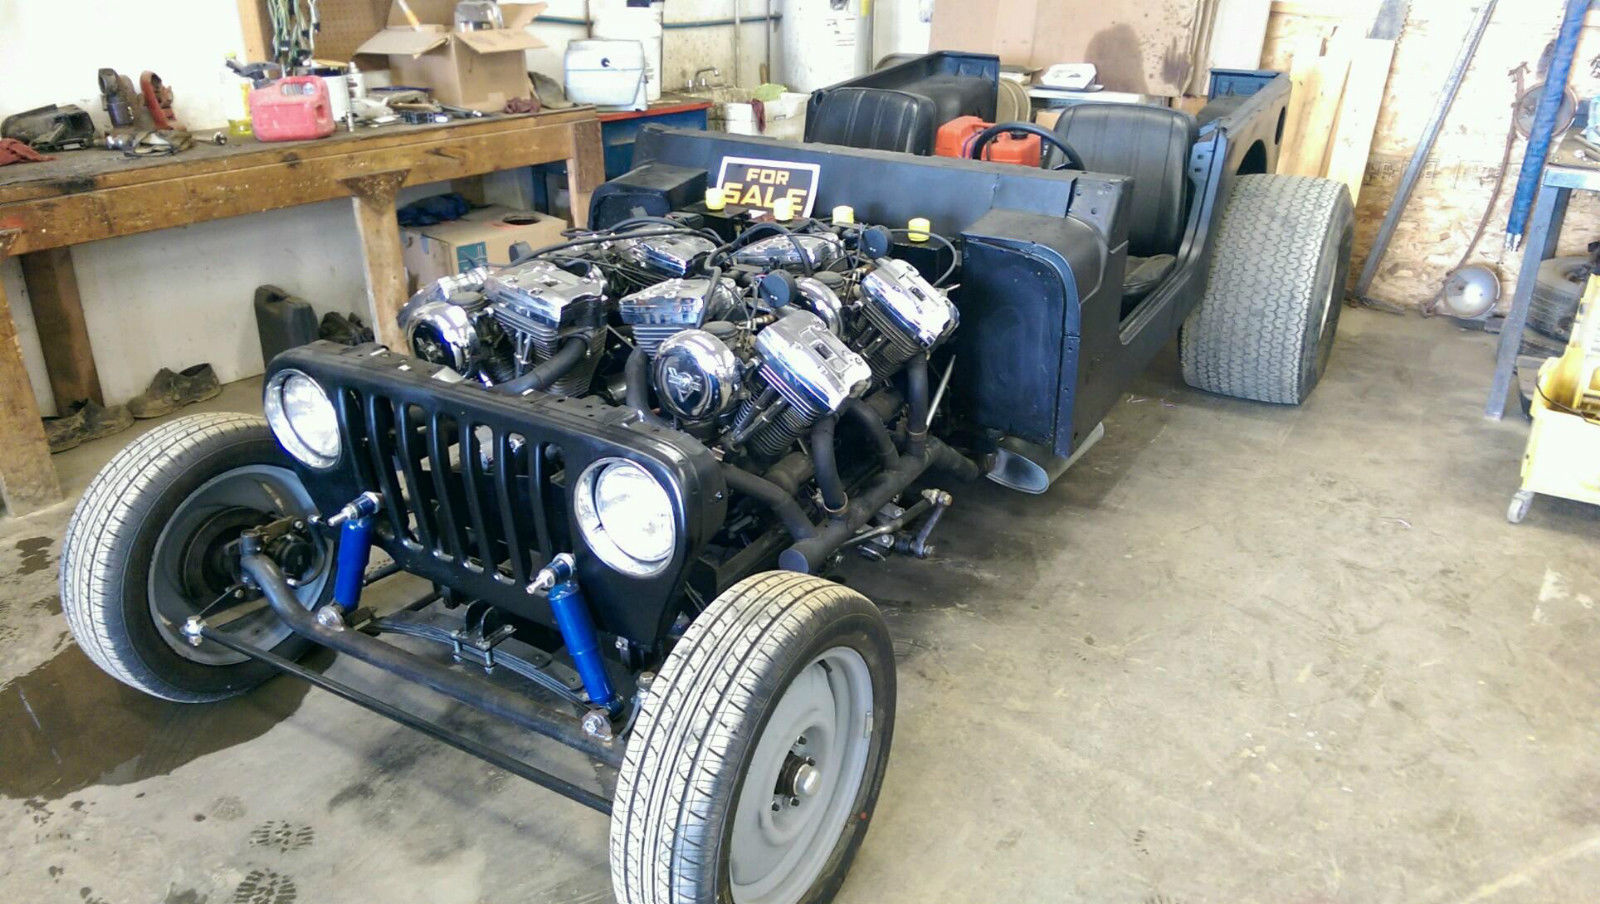 This Wild Jeep Project Is Powered By Four Harley-Davidson Engines: It Runs And Drives!